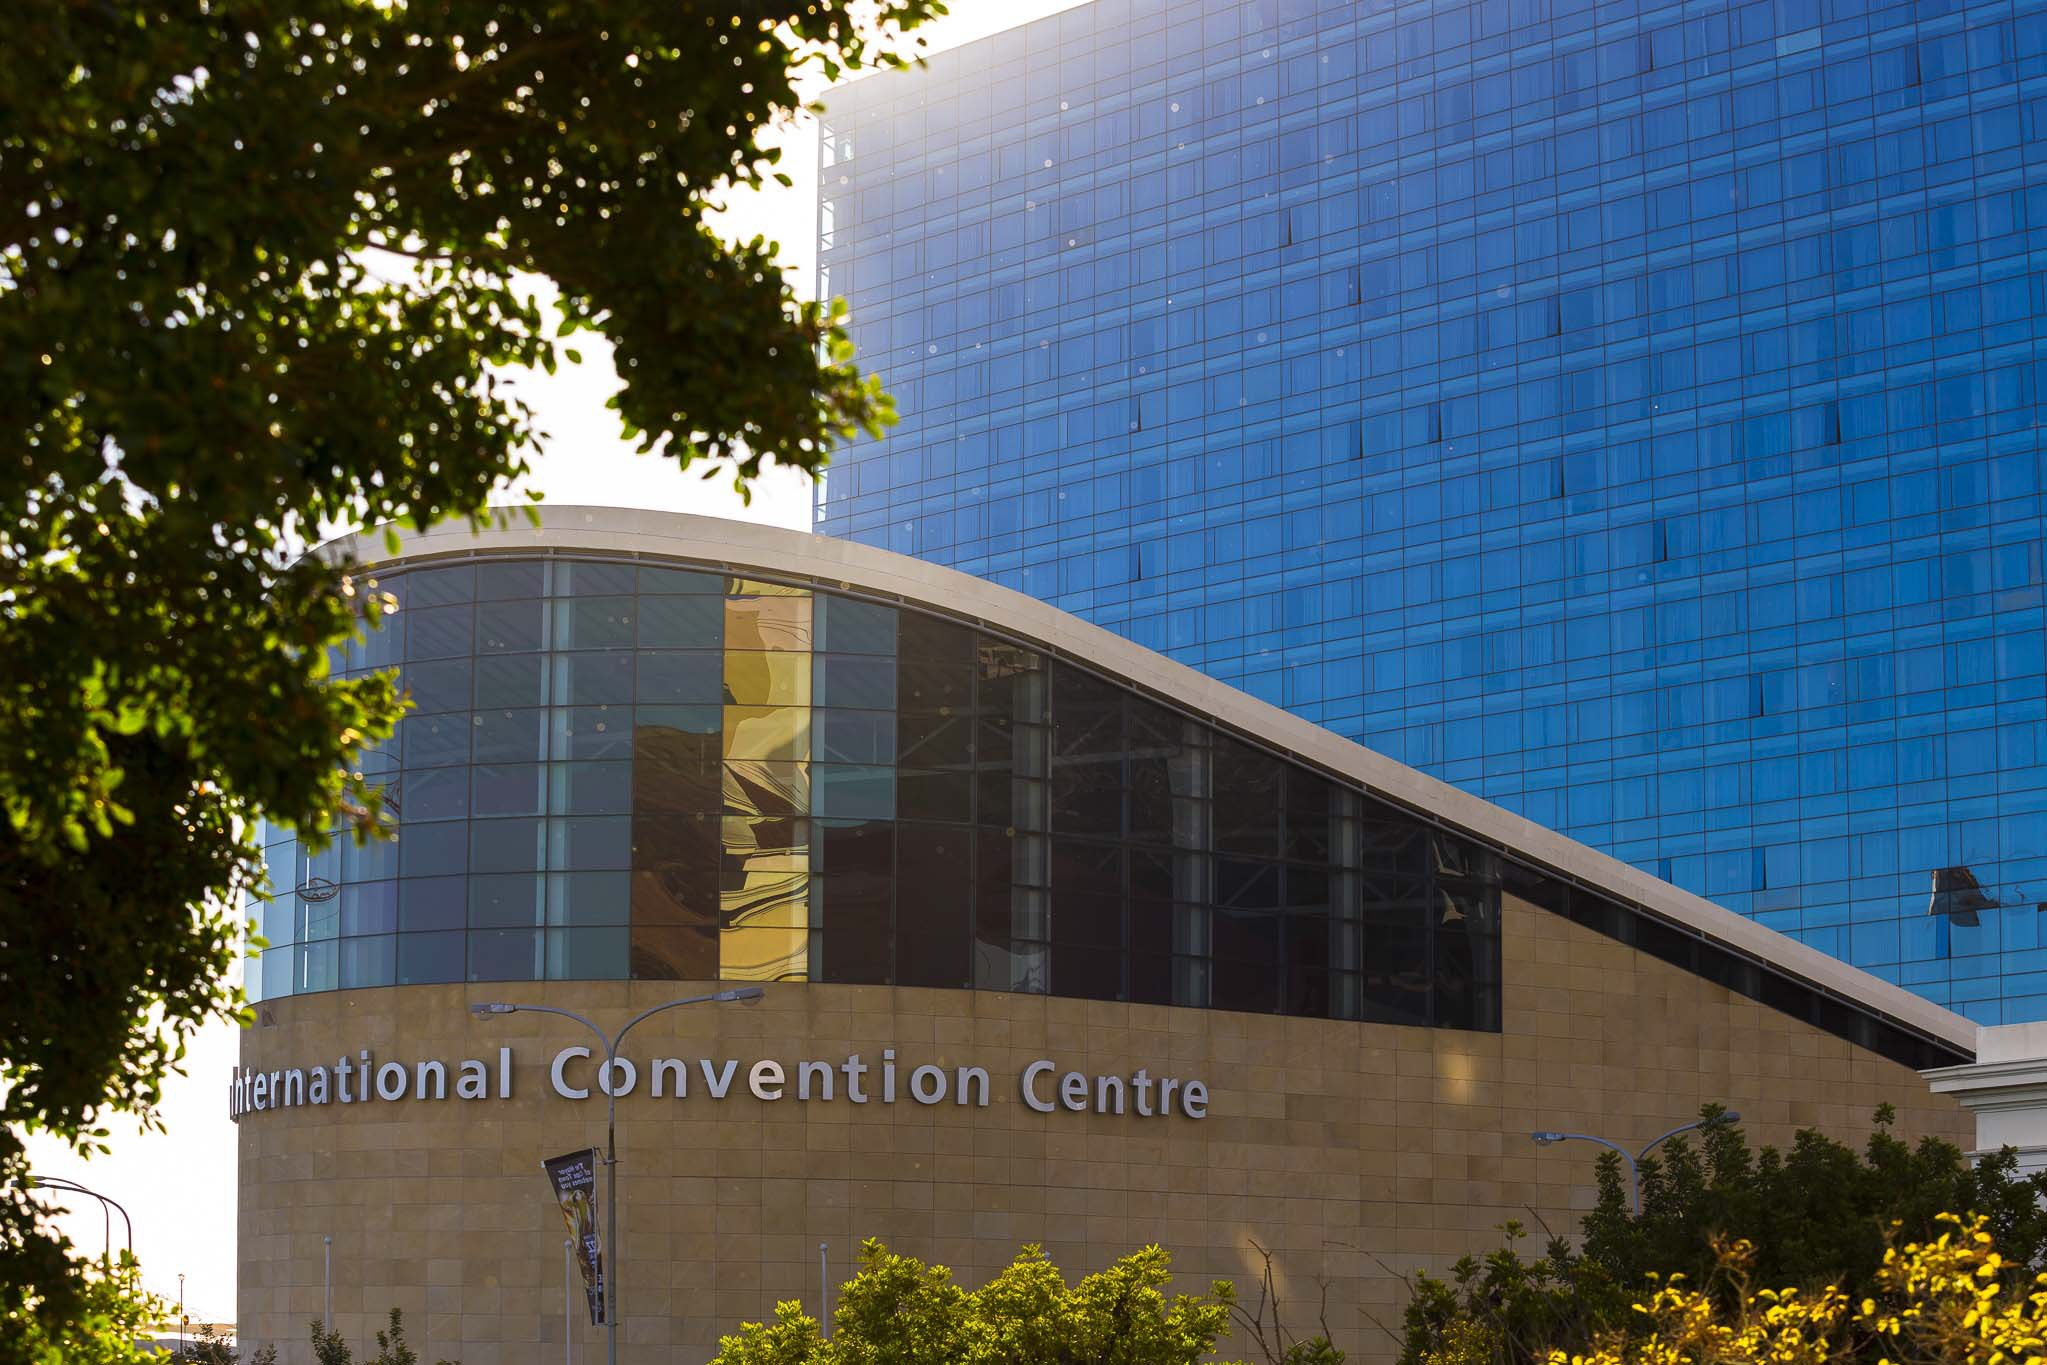 It's a beautiful day in Cape Town to welcome delegates to #RCOG2017 at the @CTICC_Official. Workshops begin today! https://t.co/gMIOz8lhbJ